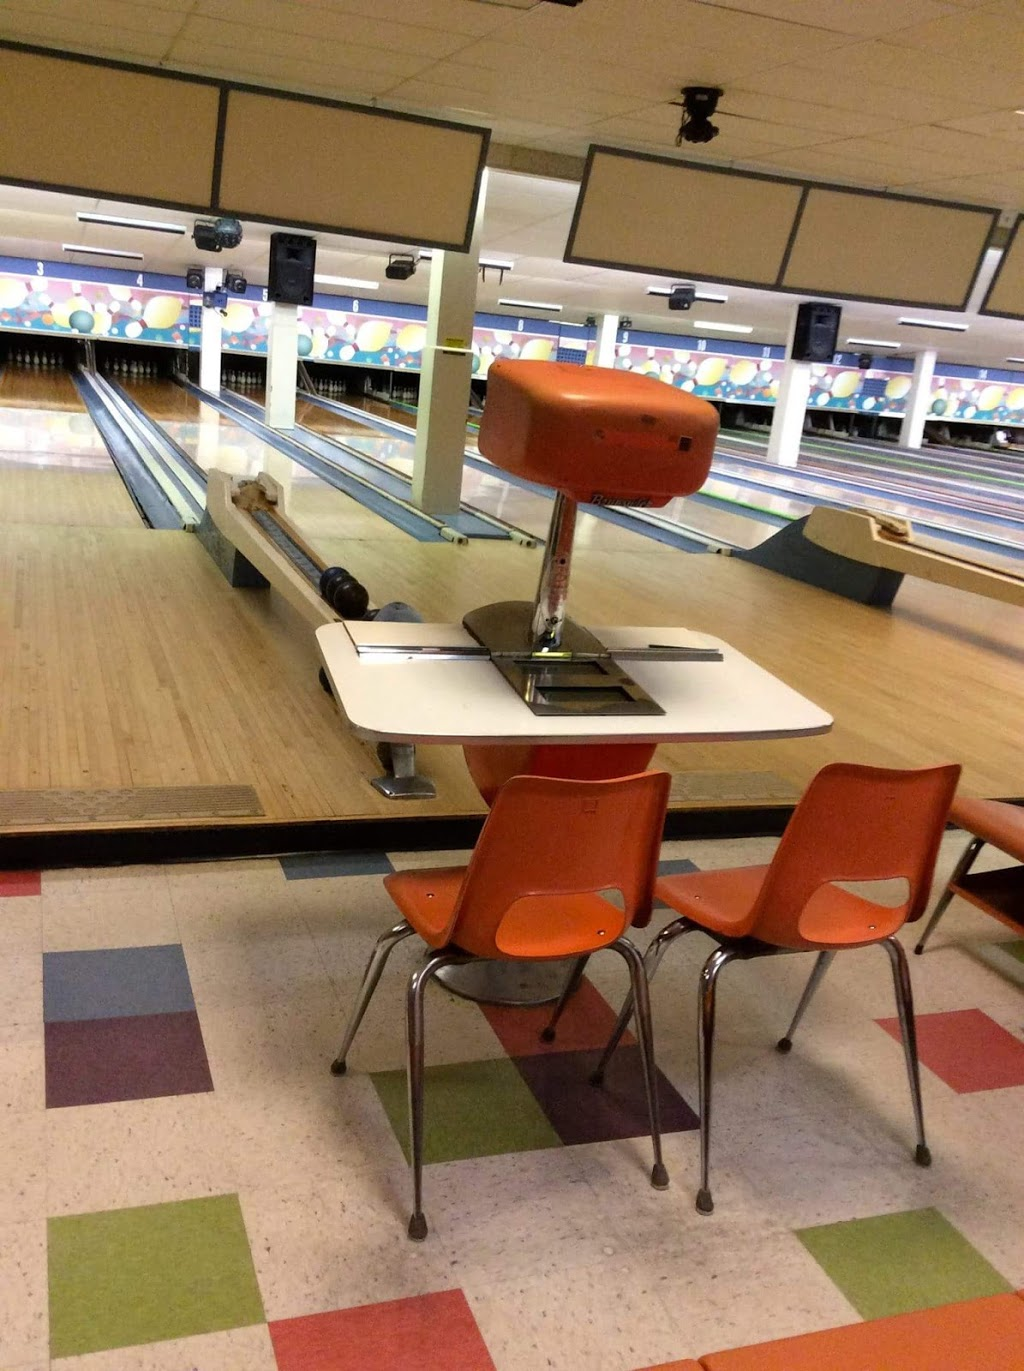 White Oak Bowling Lanes - bowling alley  | Photo 9 of 10 | Address: 11207 New Hampshire Ave, Colesville, MD 20904, USA | Phone: (301) 593-3000